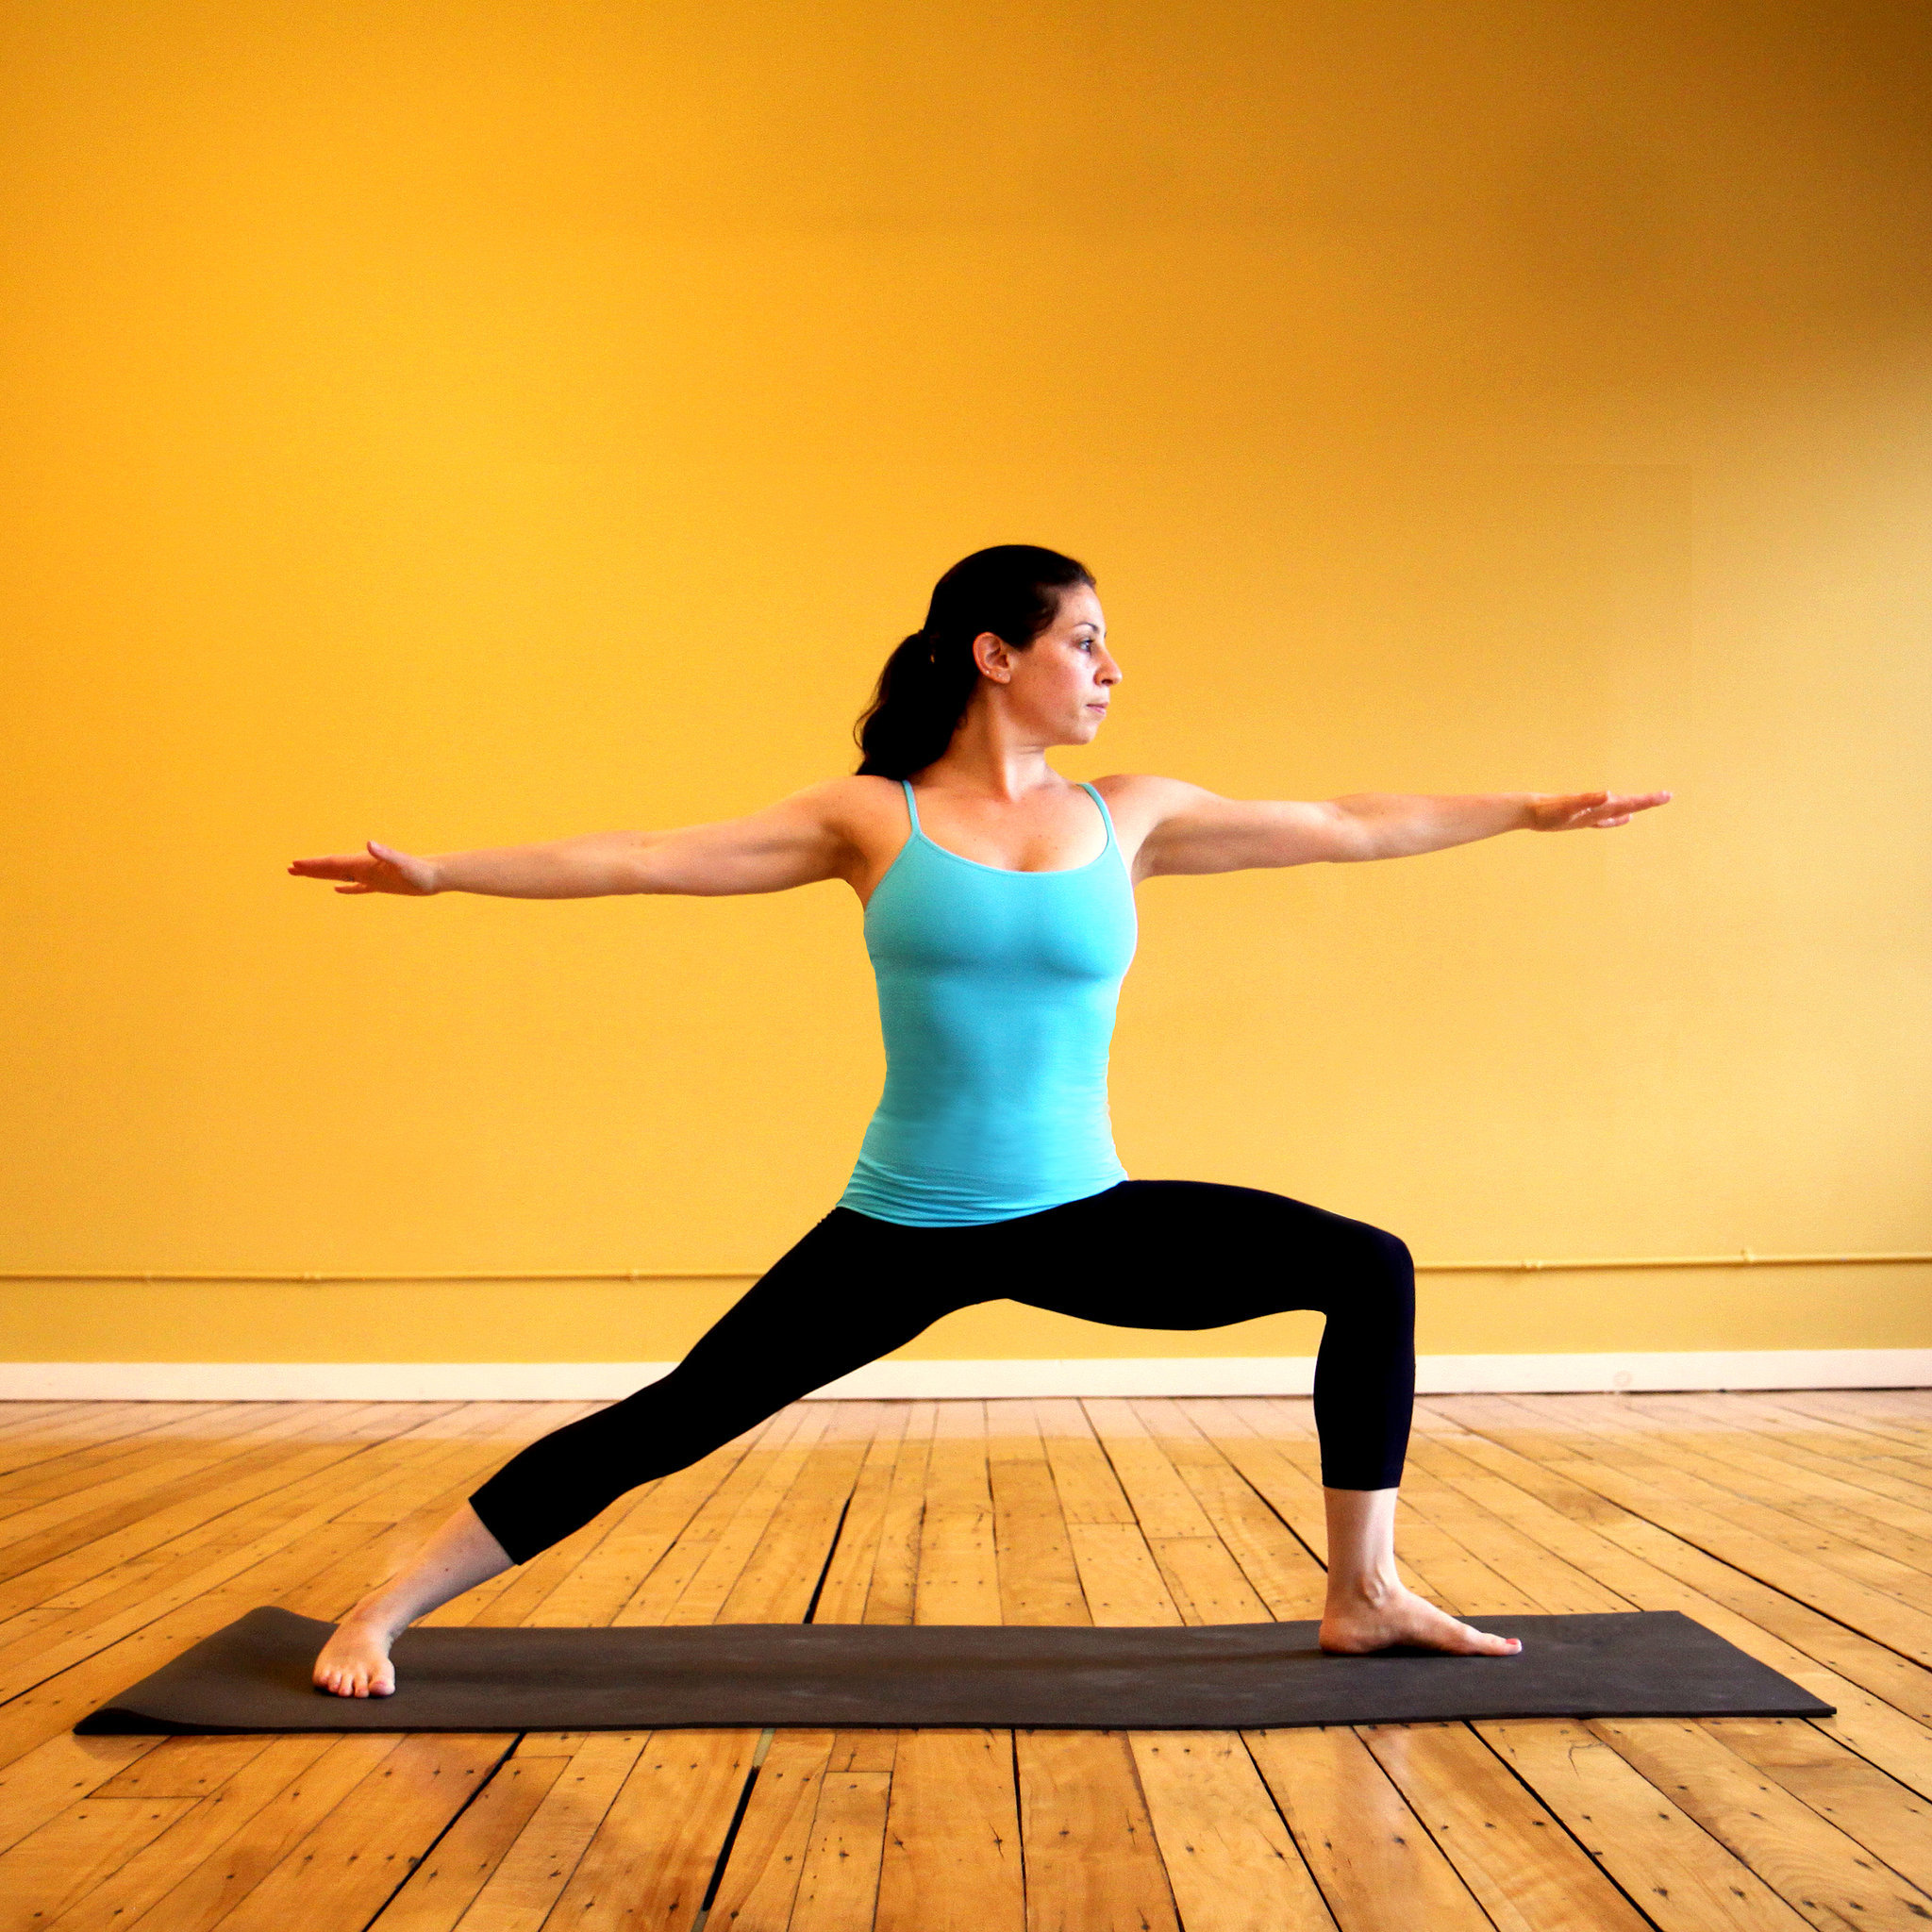 Yoga For Weight Loss | Private Space for Women  Warrior 2 Pose